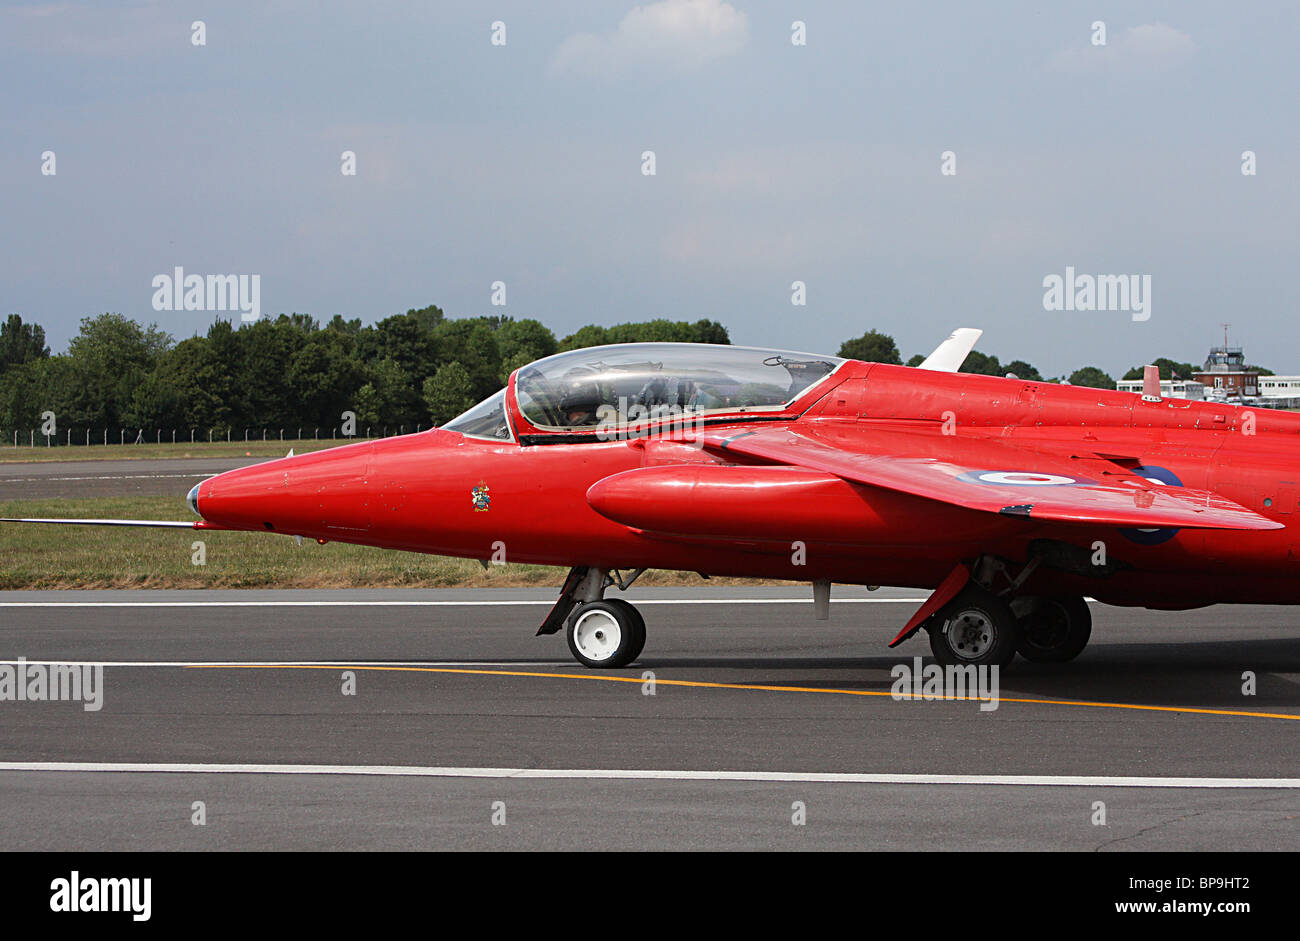 A Folland Gnat preparing for take-off - Stock Image